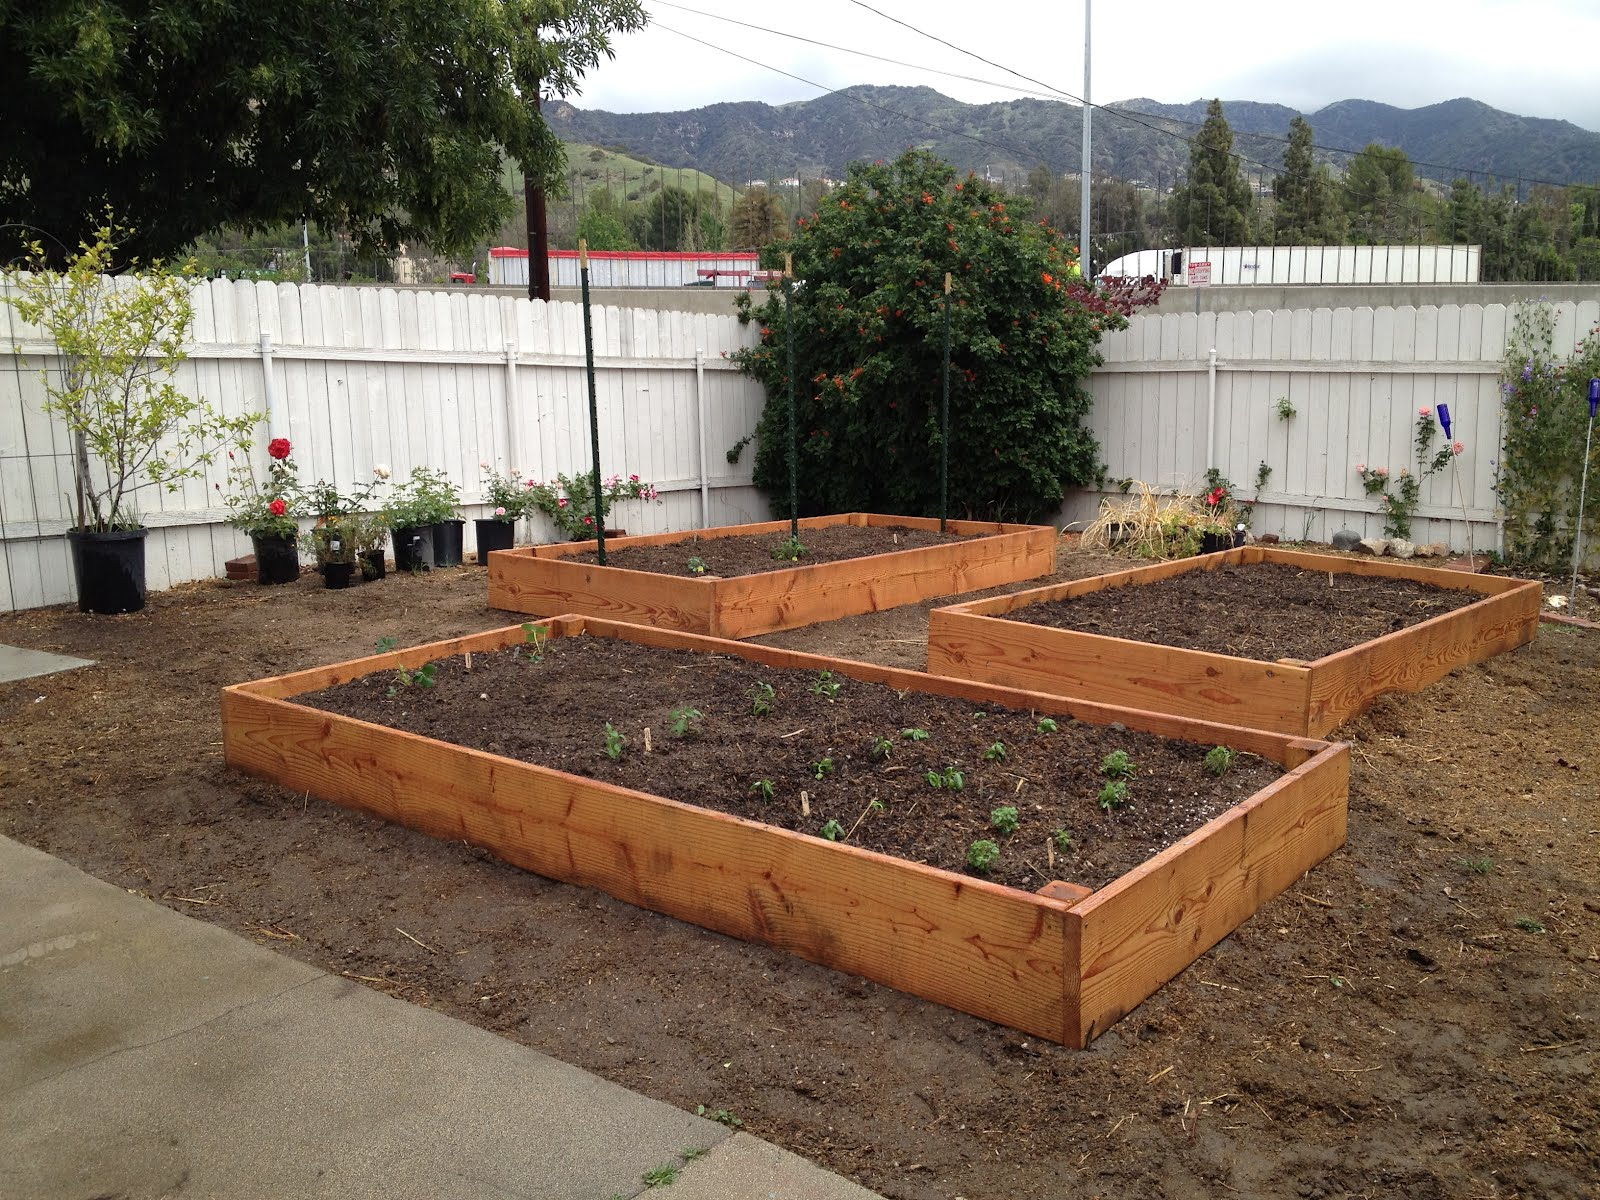 Backyard Vegetable Farming :  and rick built me 3 raised beds for a backyard vegetable garden they